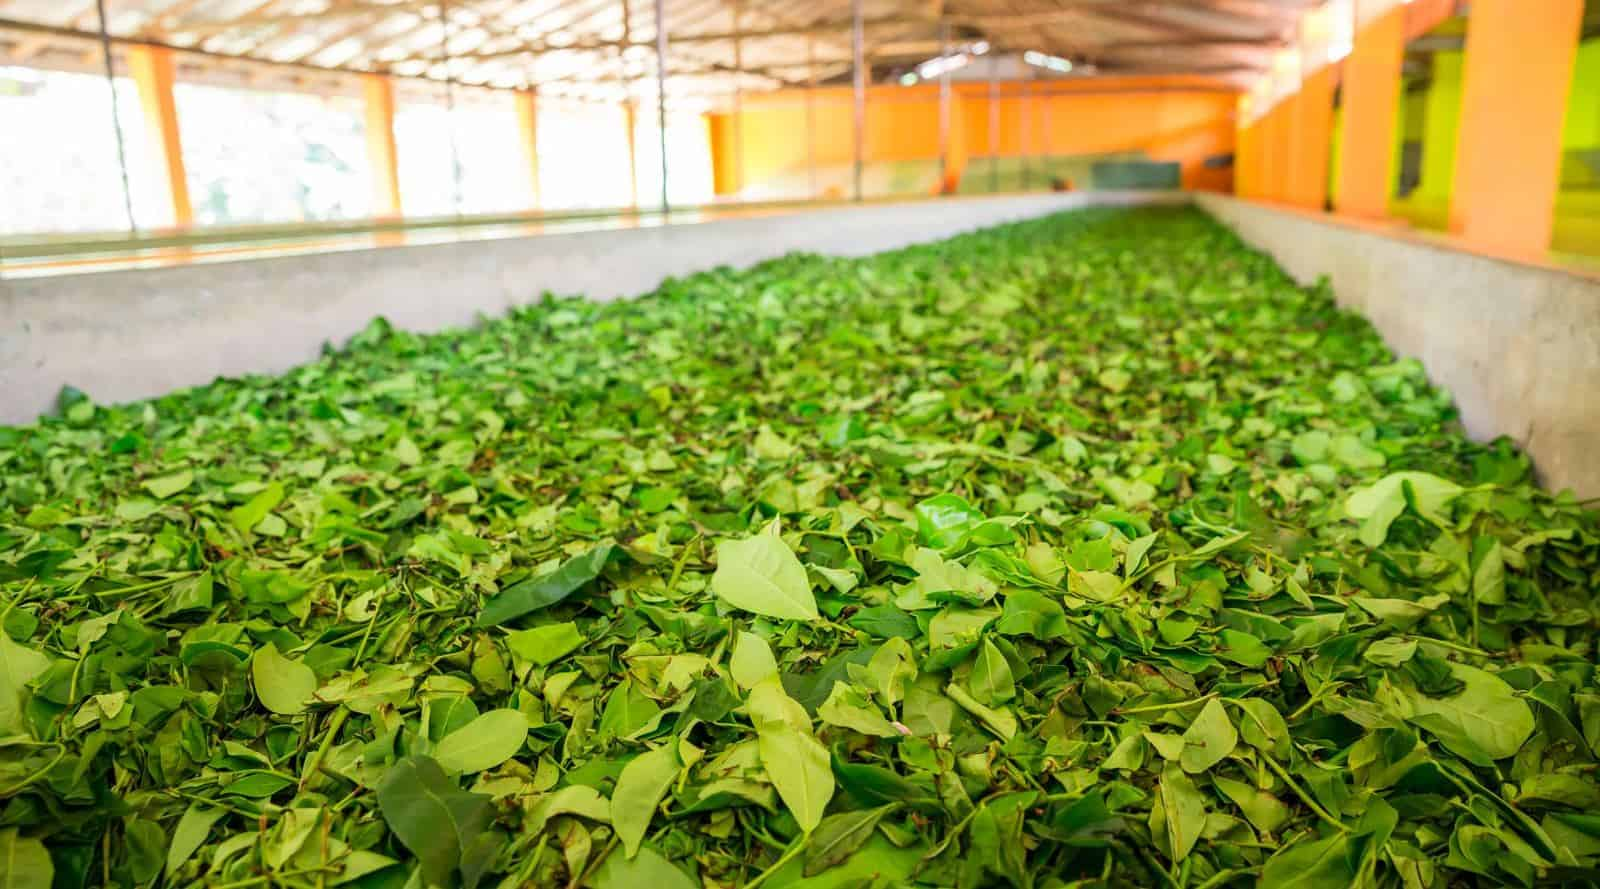 how tea is produced? tea processing and production steps